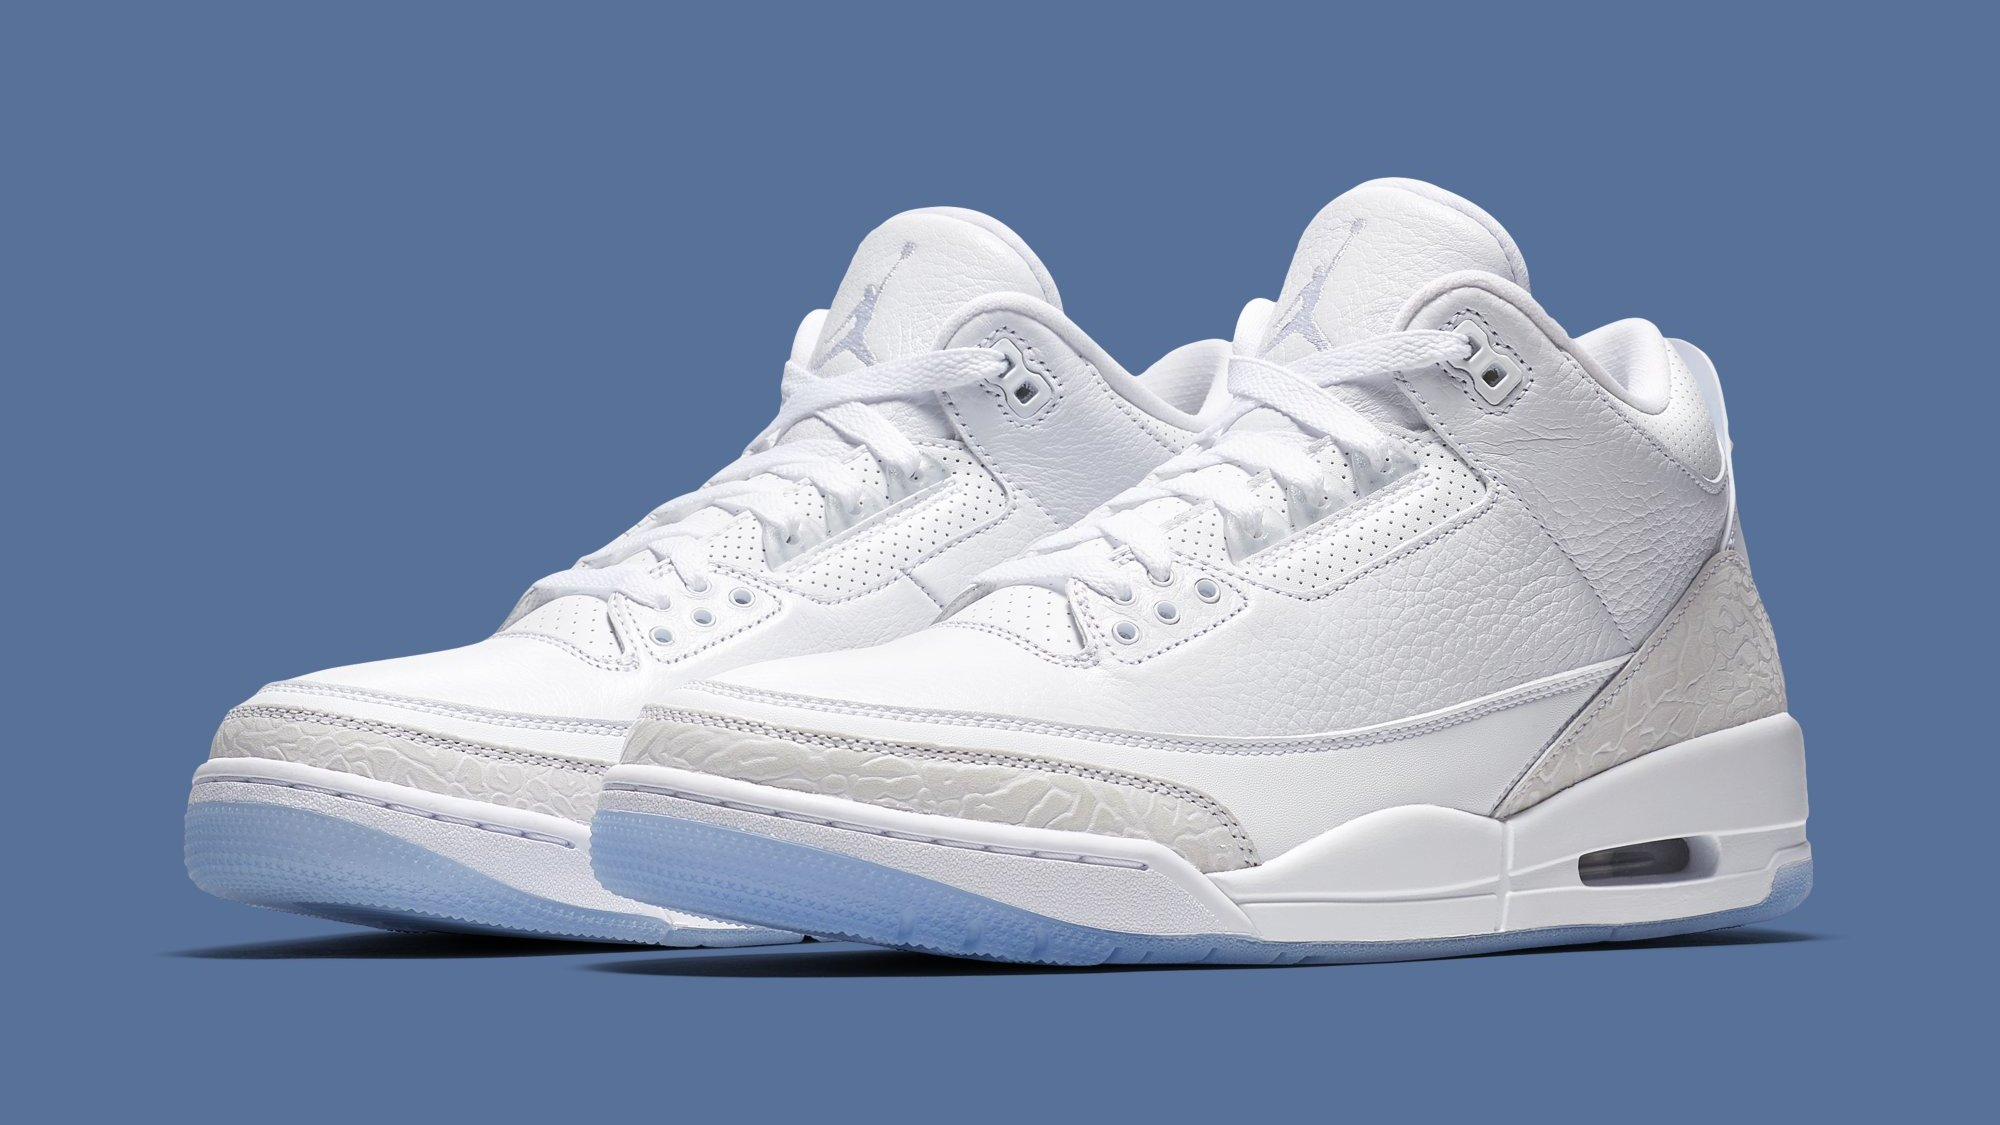 check out ad2d8 281e4 Air Jordan 3 'Triple White' 136064-111 Release Date | Sole ...